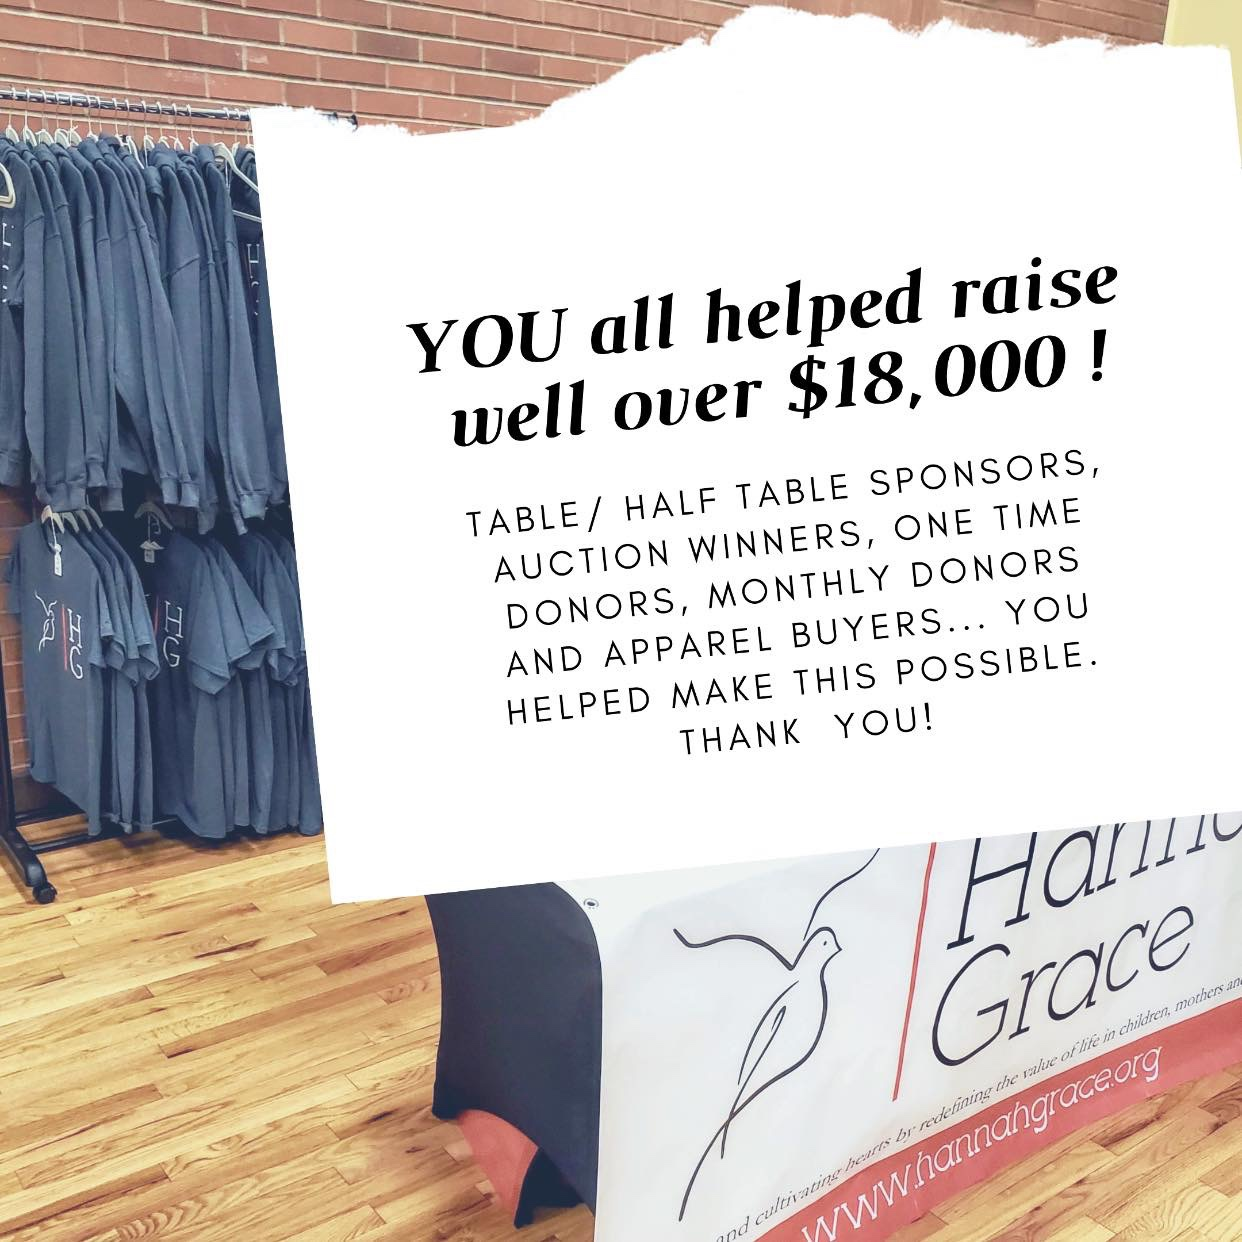 The Event raised over $18,000 for HG families!